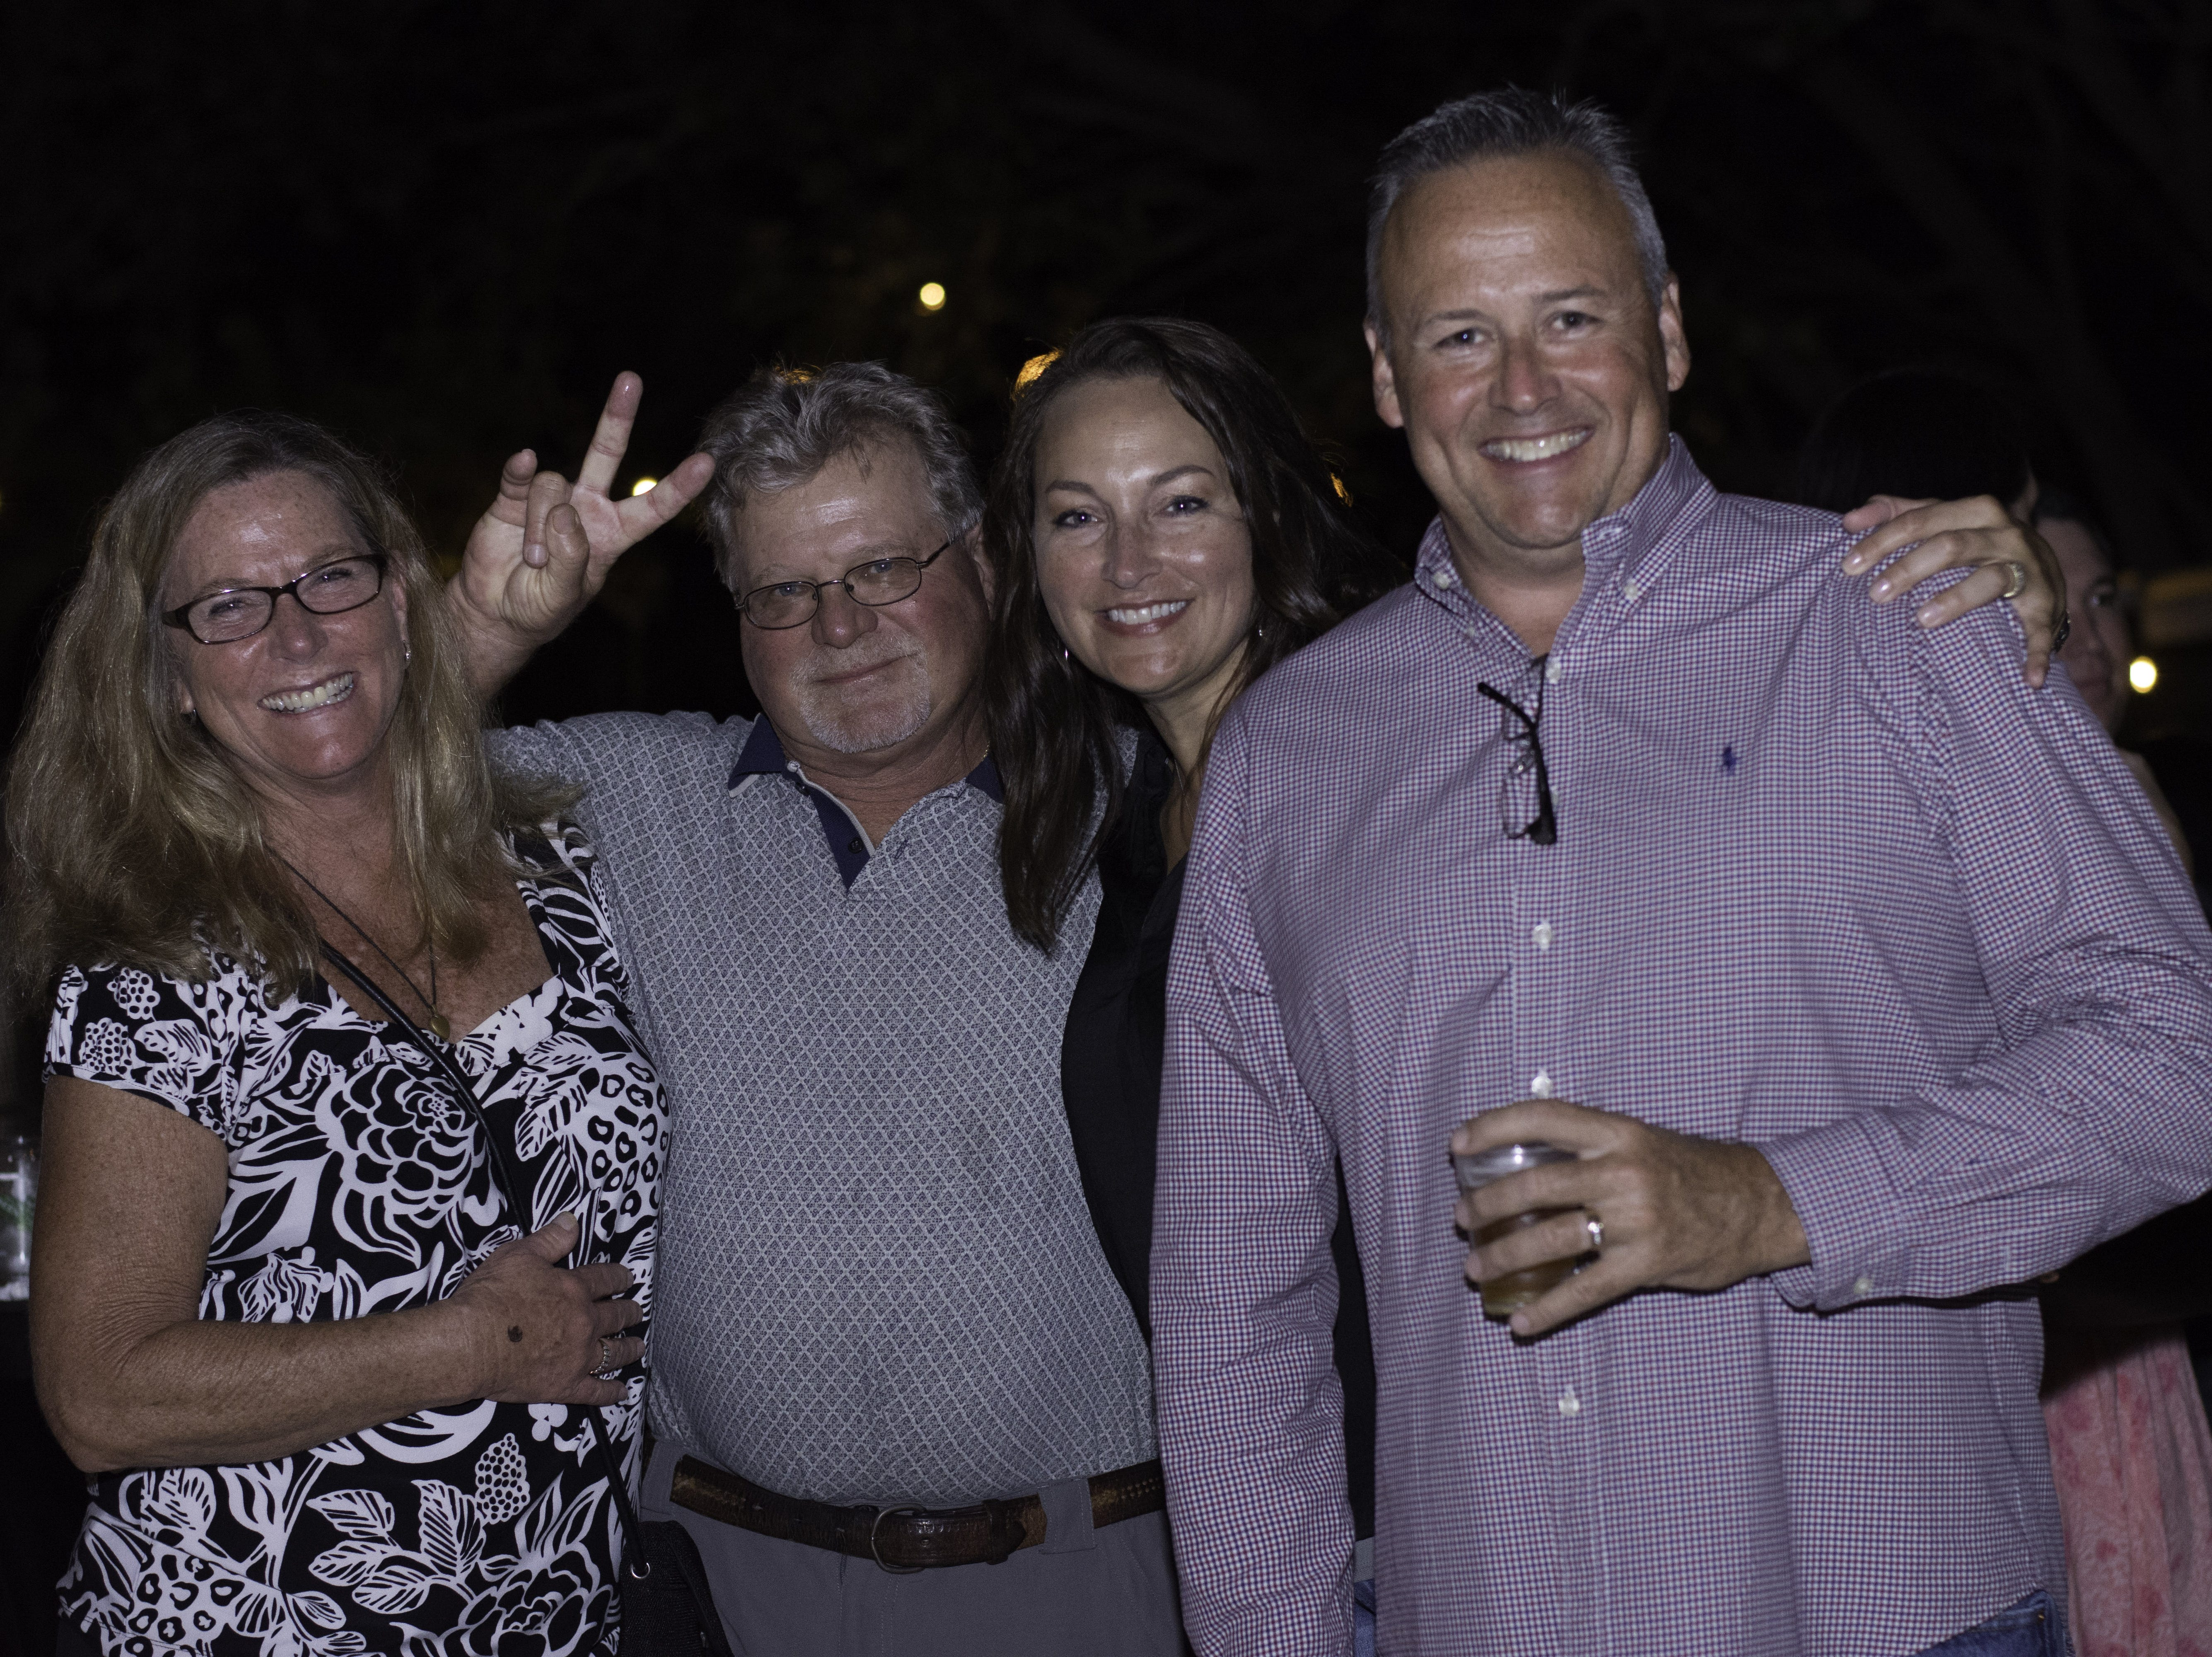 Jenny and Dennis Atkins stand with Missy and Garrett Lamp for a photo at the Acoustic Wine Lounge at Jazzoo.